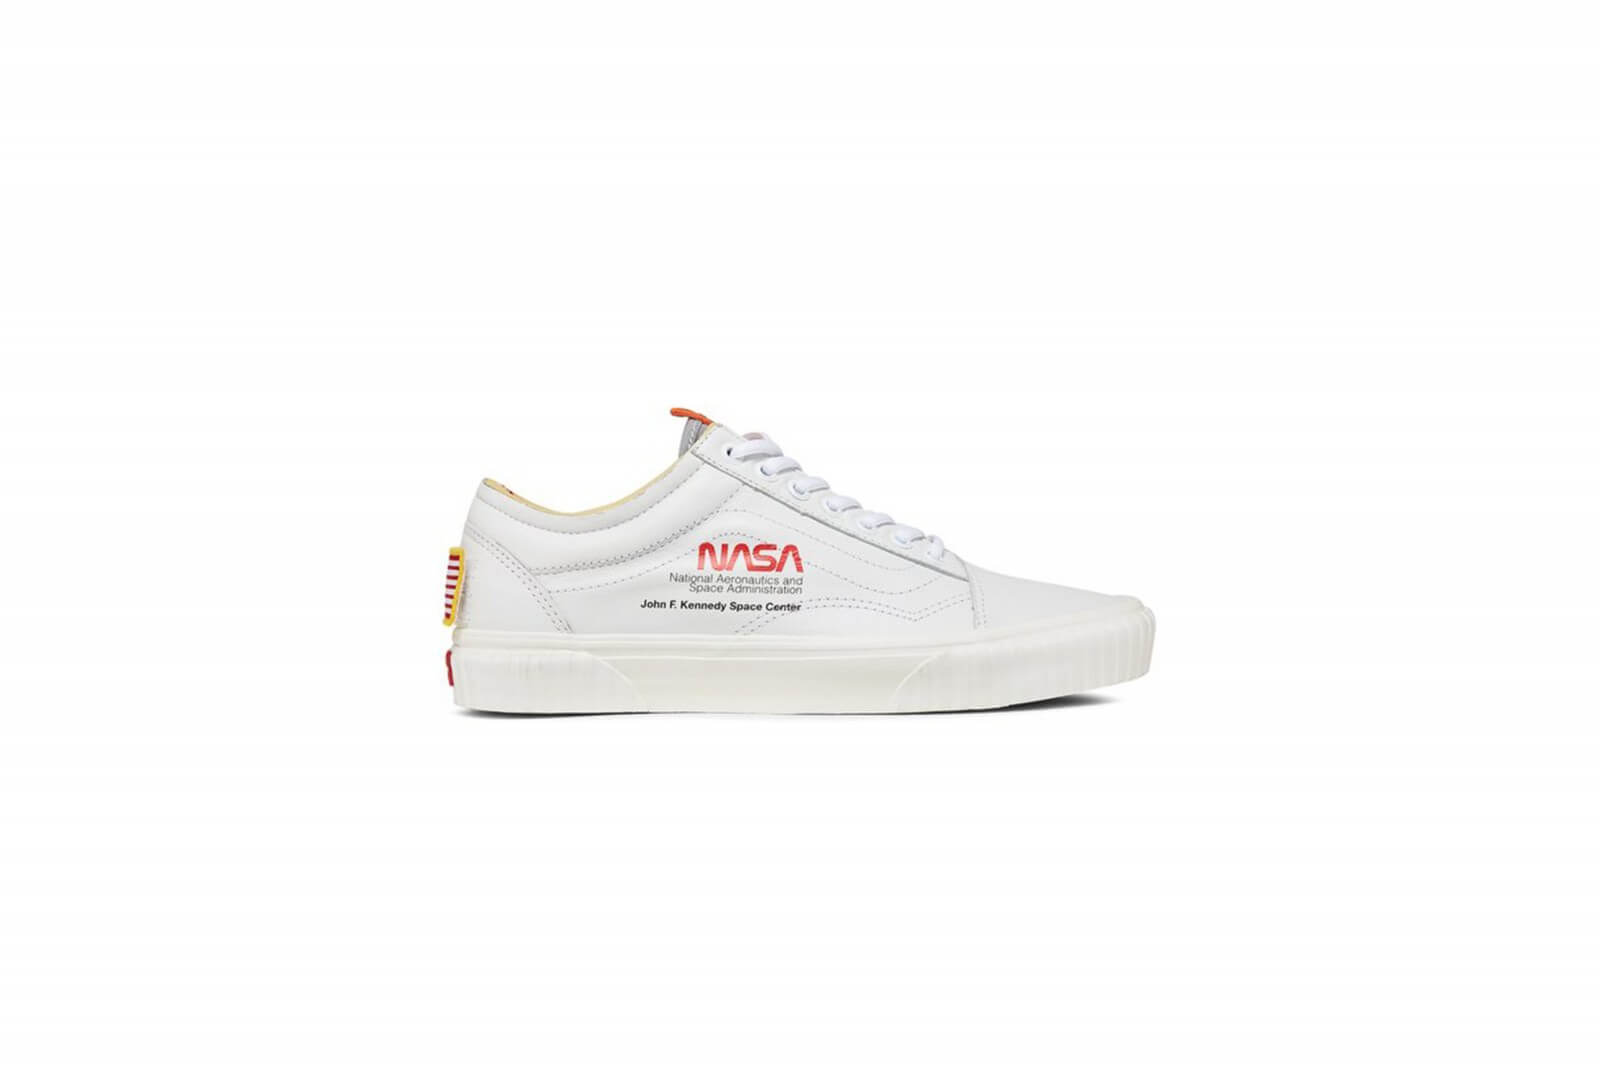 58667e492c chaussures vans x space voyager old skool blanche off 55% - www ...